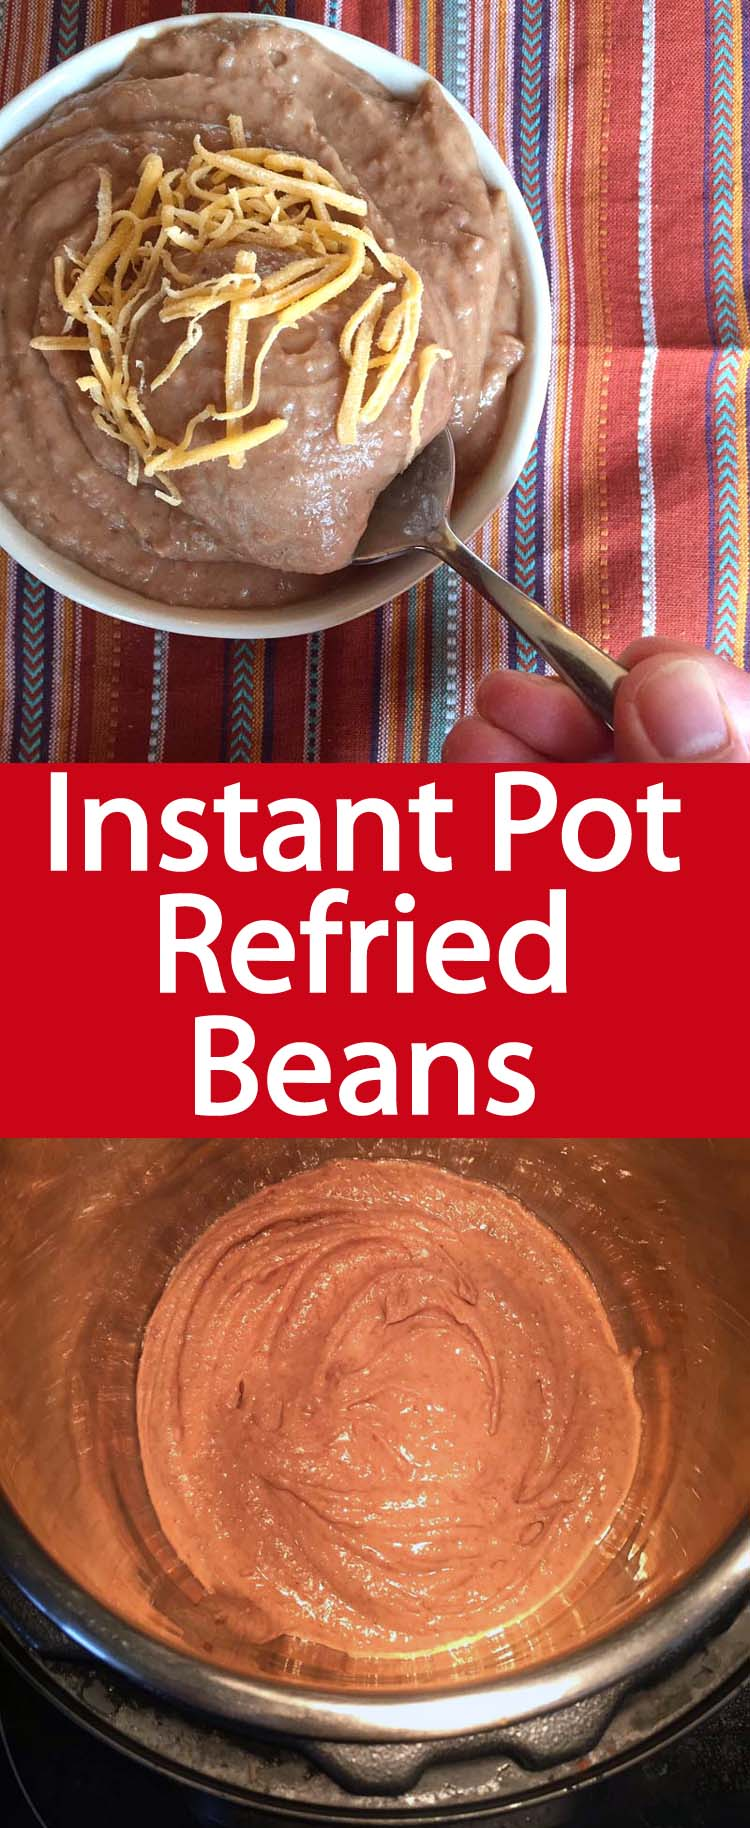 These Instant Pot refried beans are amazing! Once you try making refried beans from scratch, you'll never want to eat ones from the can! Instant Pot is a true game changer!